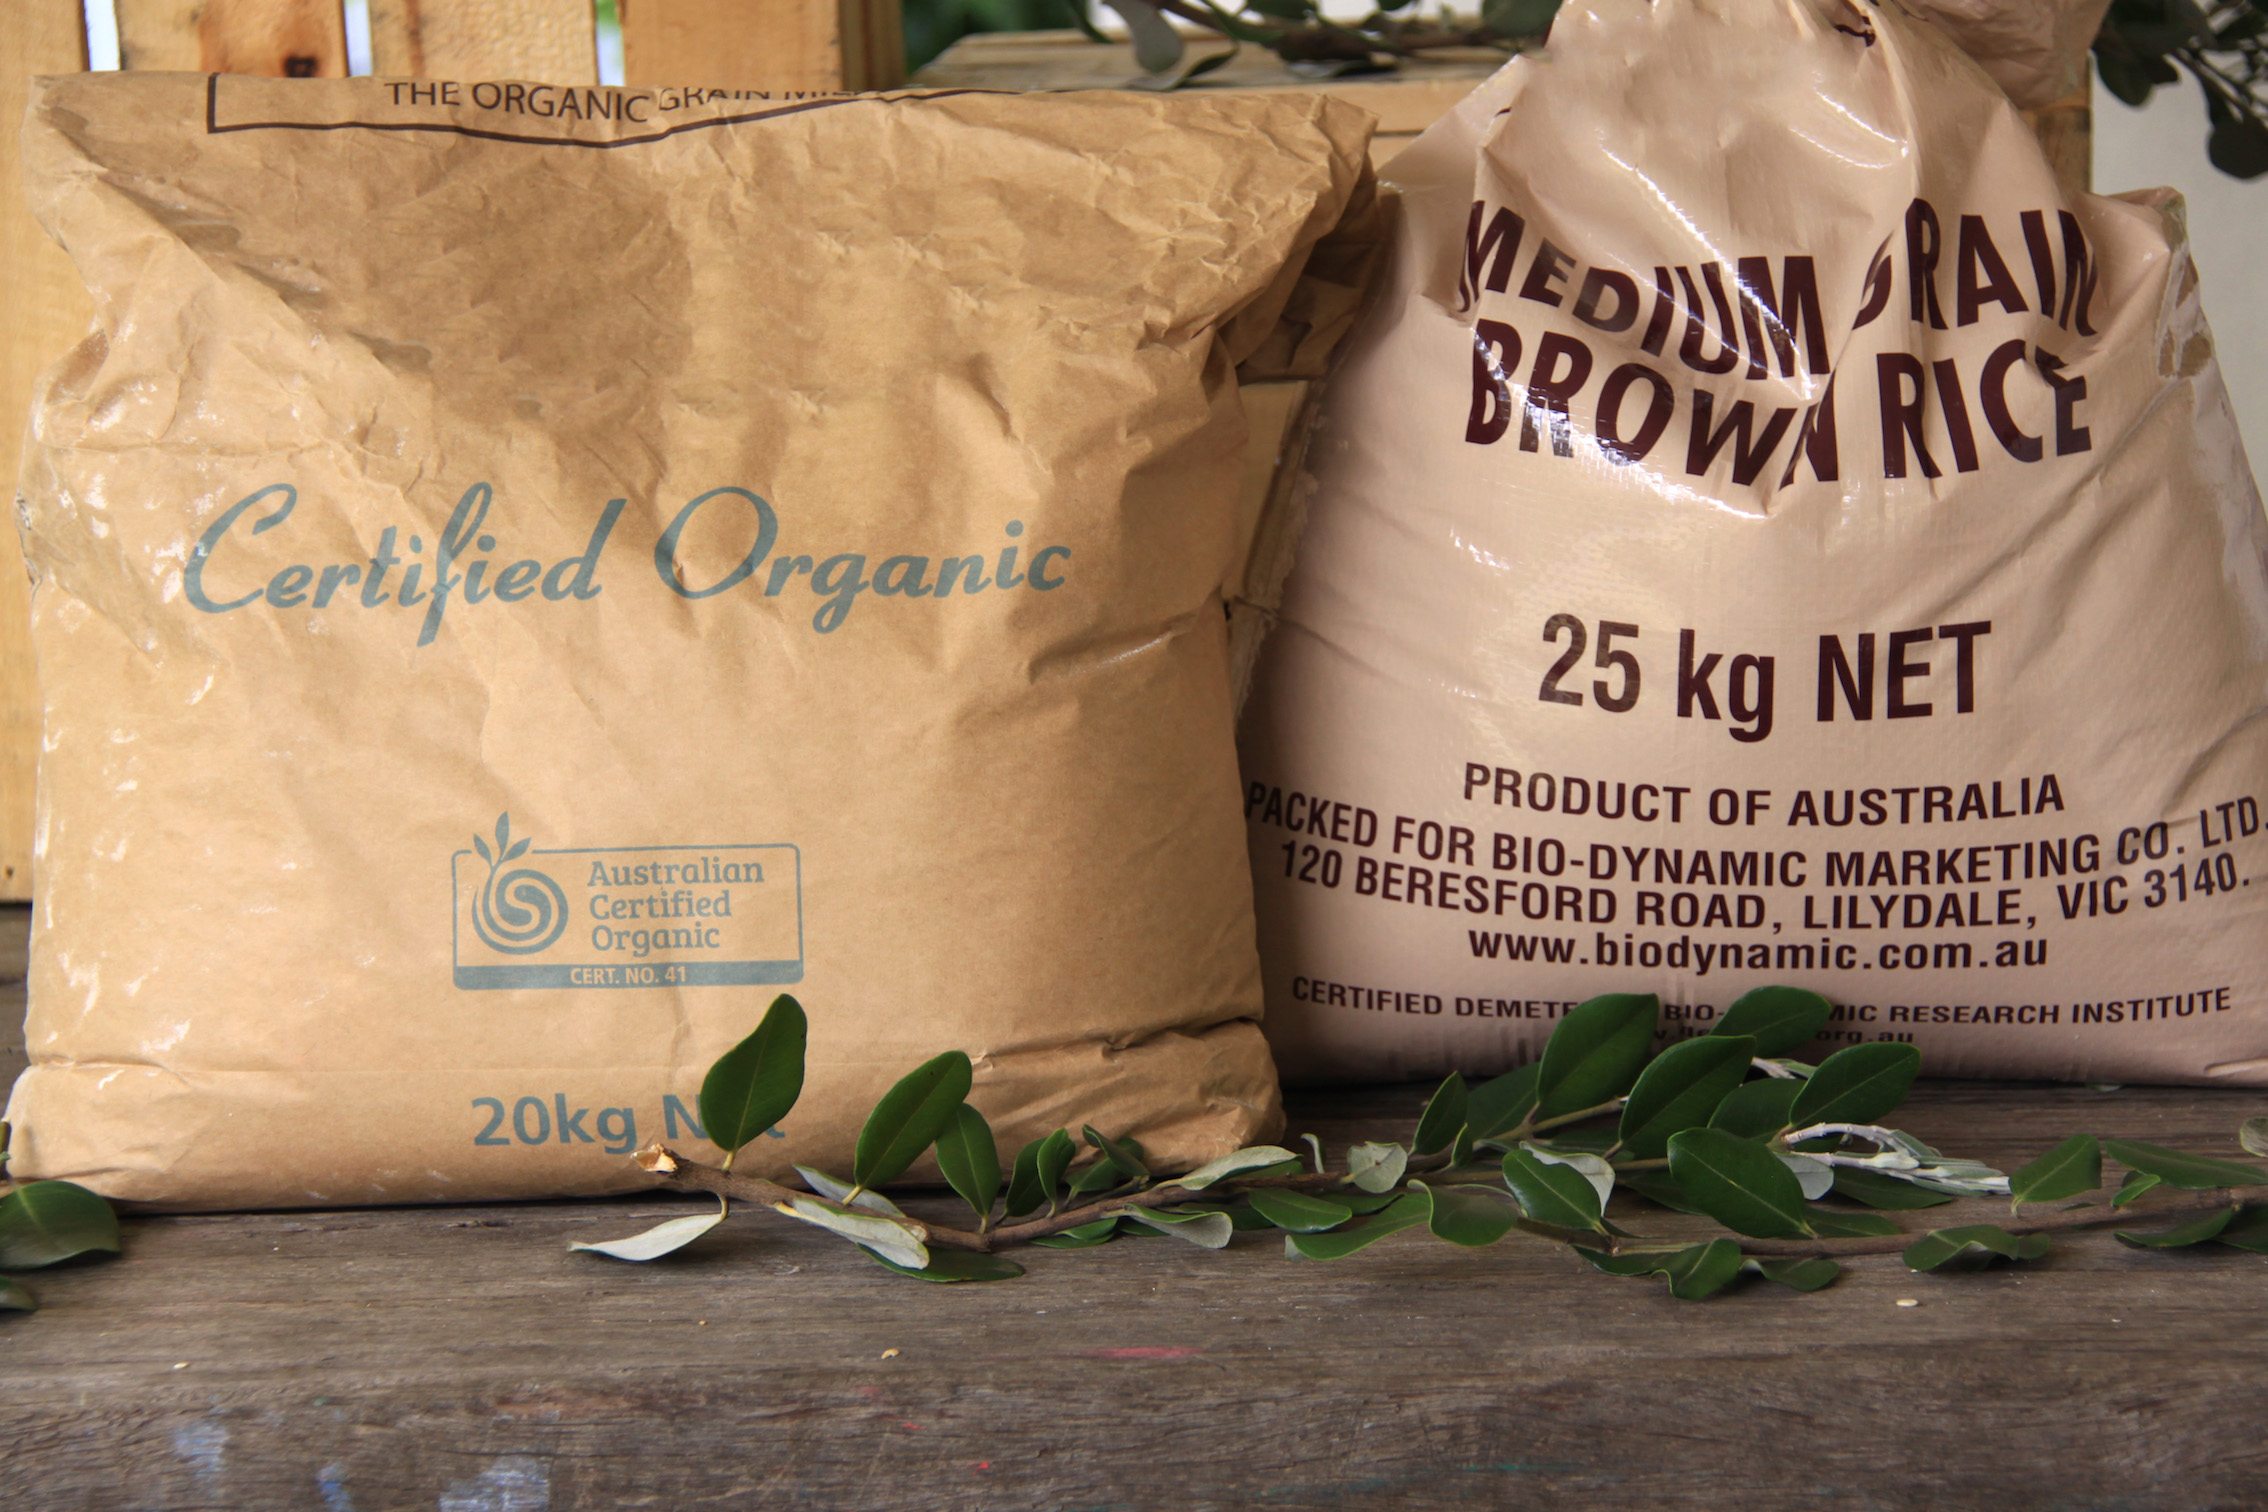 Quality Bulk Wholefoods - We have sourced a select bunch of staple quality bulk wholefoods that meet our sustainability criteria - the rrrrrr's. We prefer organic and therefore chemical free!